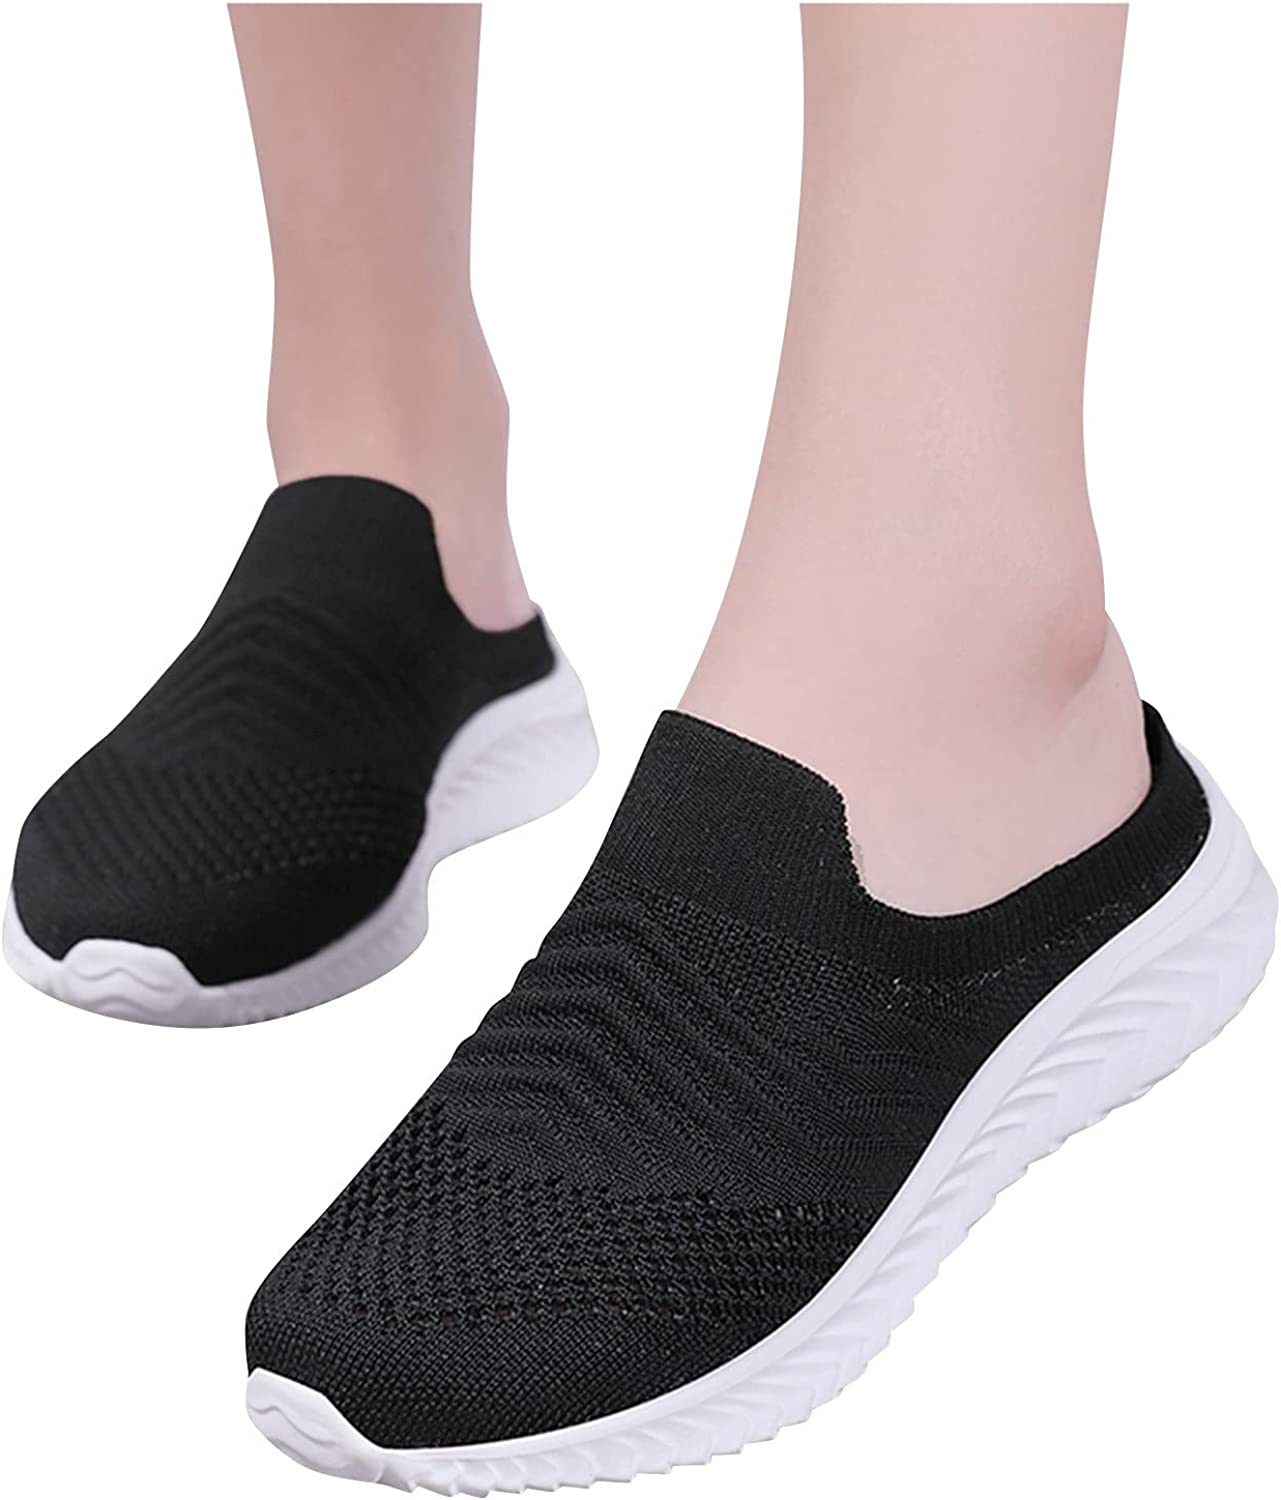 Aniywn Womens Sneakers Lightweight Breathable Slip On Shoes Running Shoes Non Slip Workout Walking Tennis Sneakers